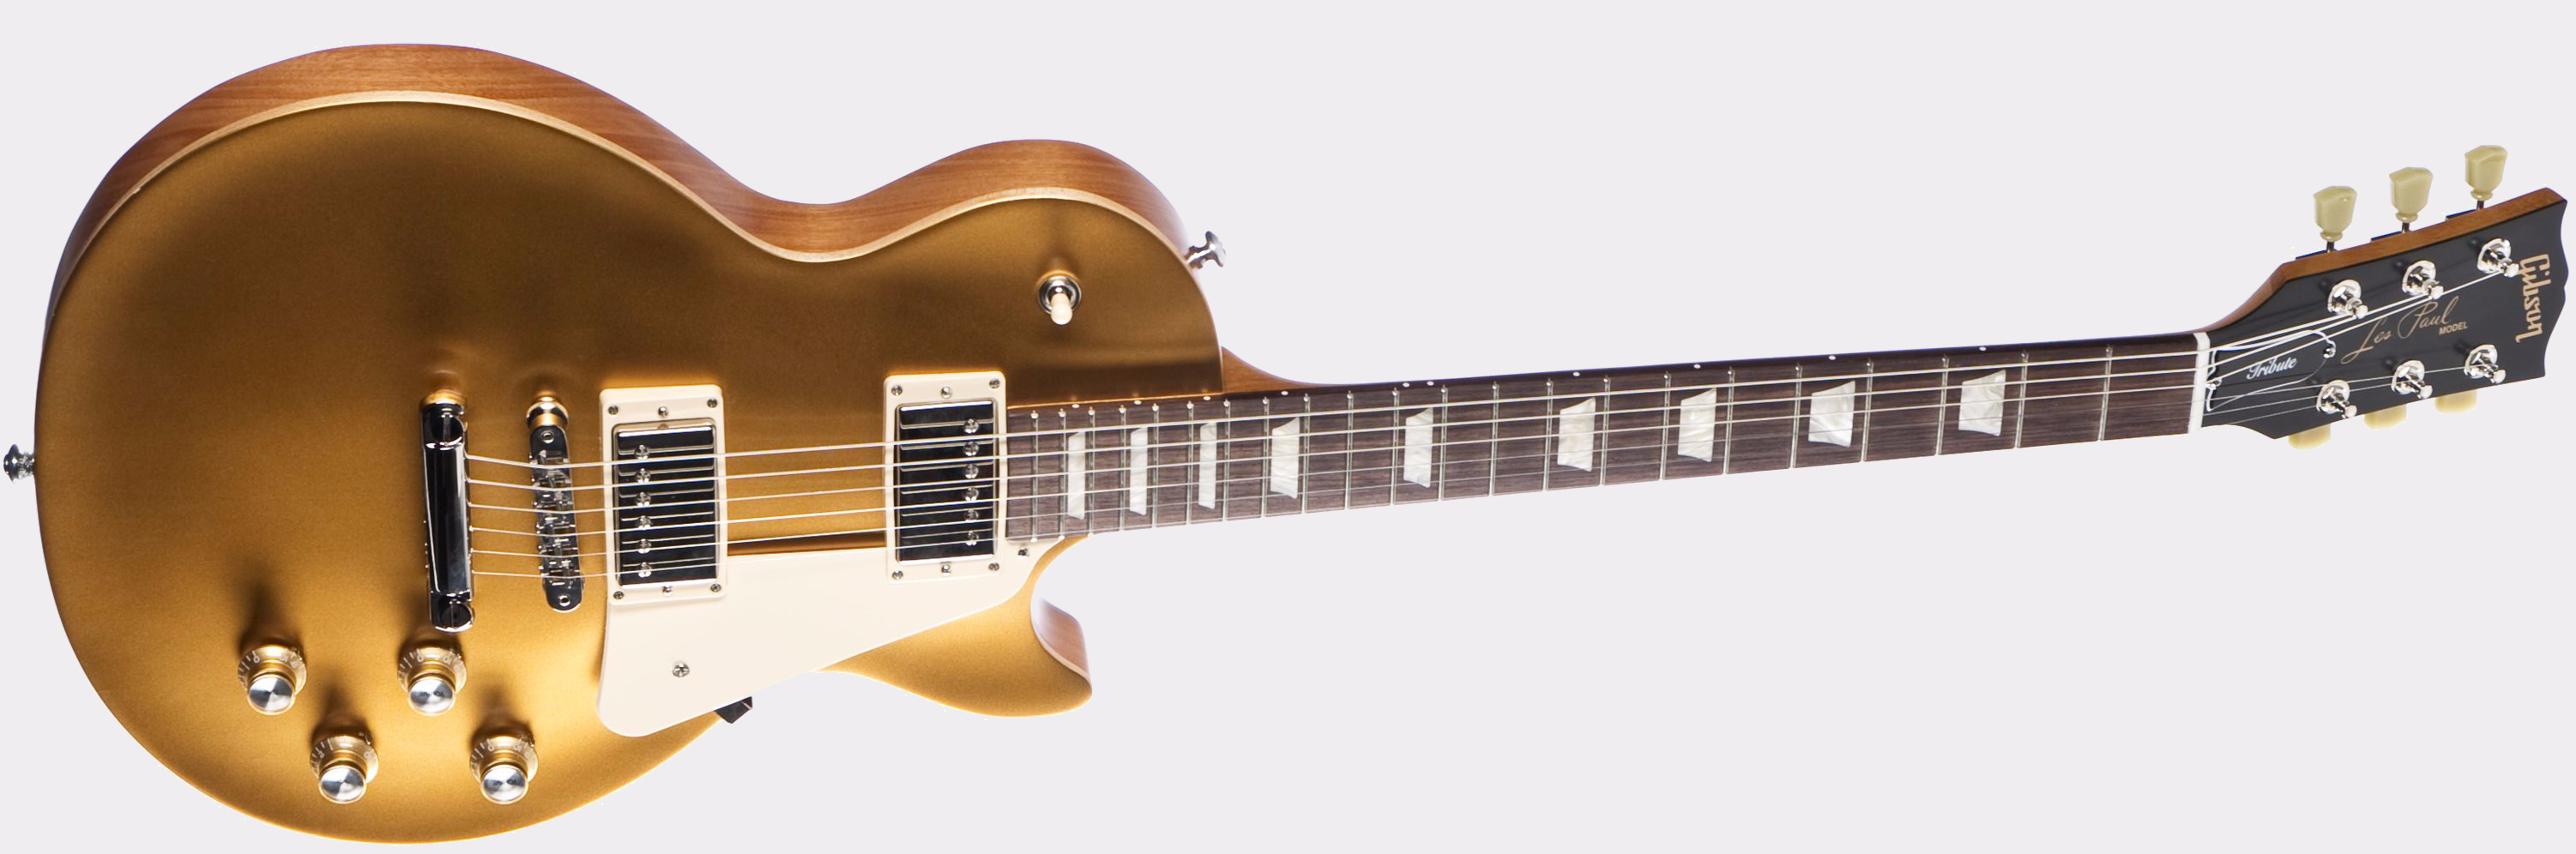 Gibson Les Paul Tribute 2017 T Satin Gold Front